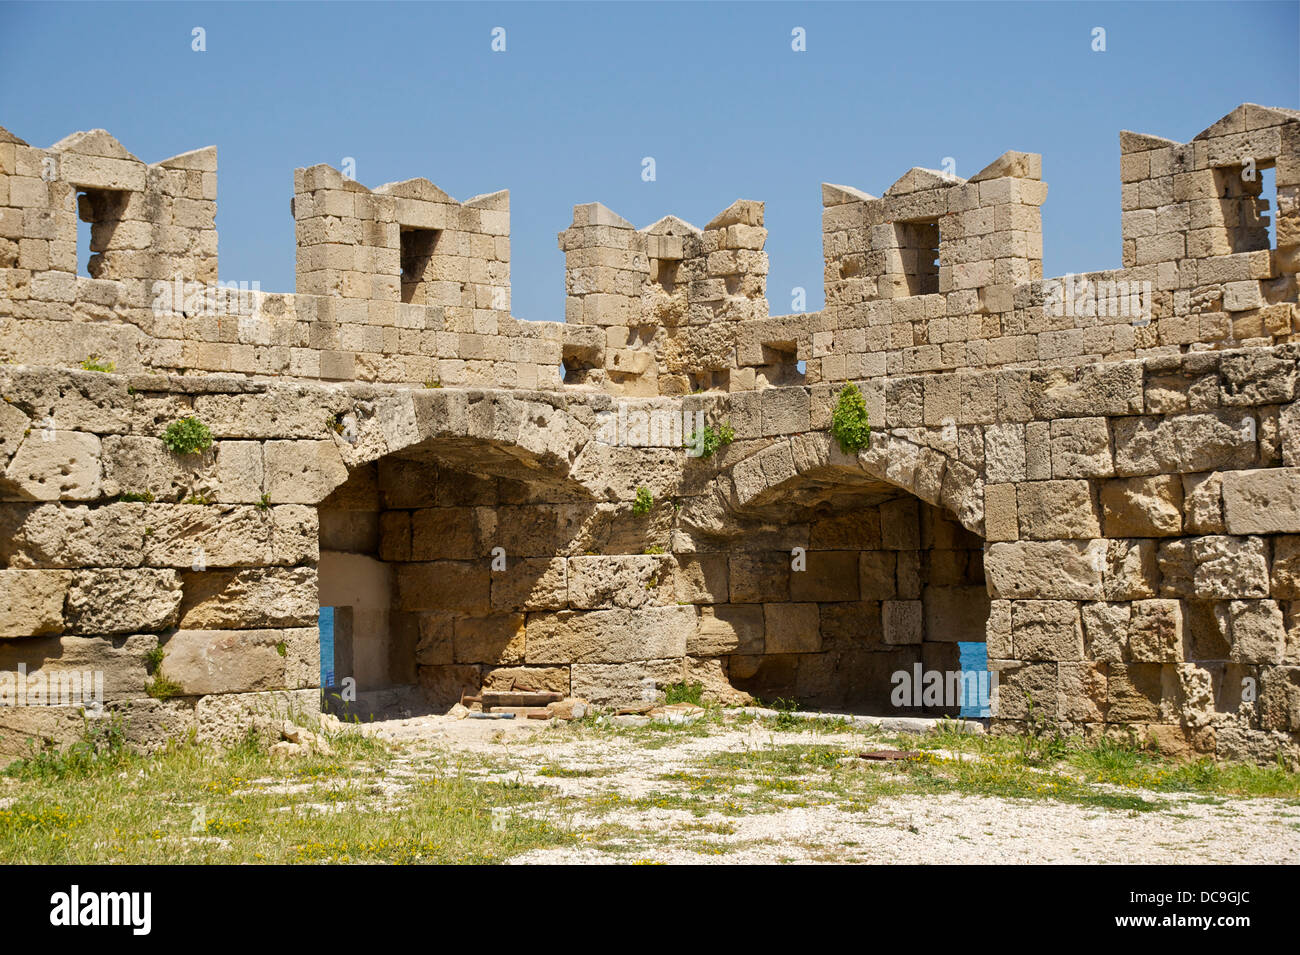 part of the defensive structures of the fortifications of Rhodes, Greece. - Stock Image